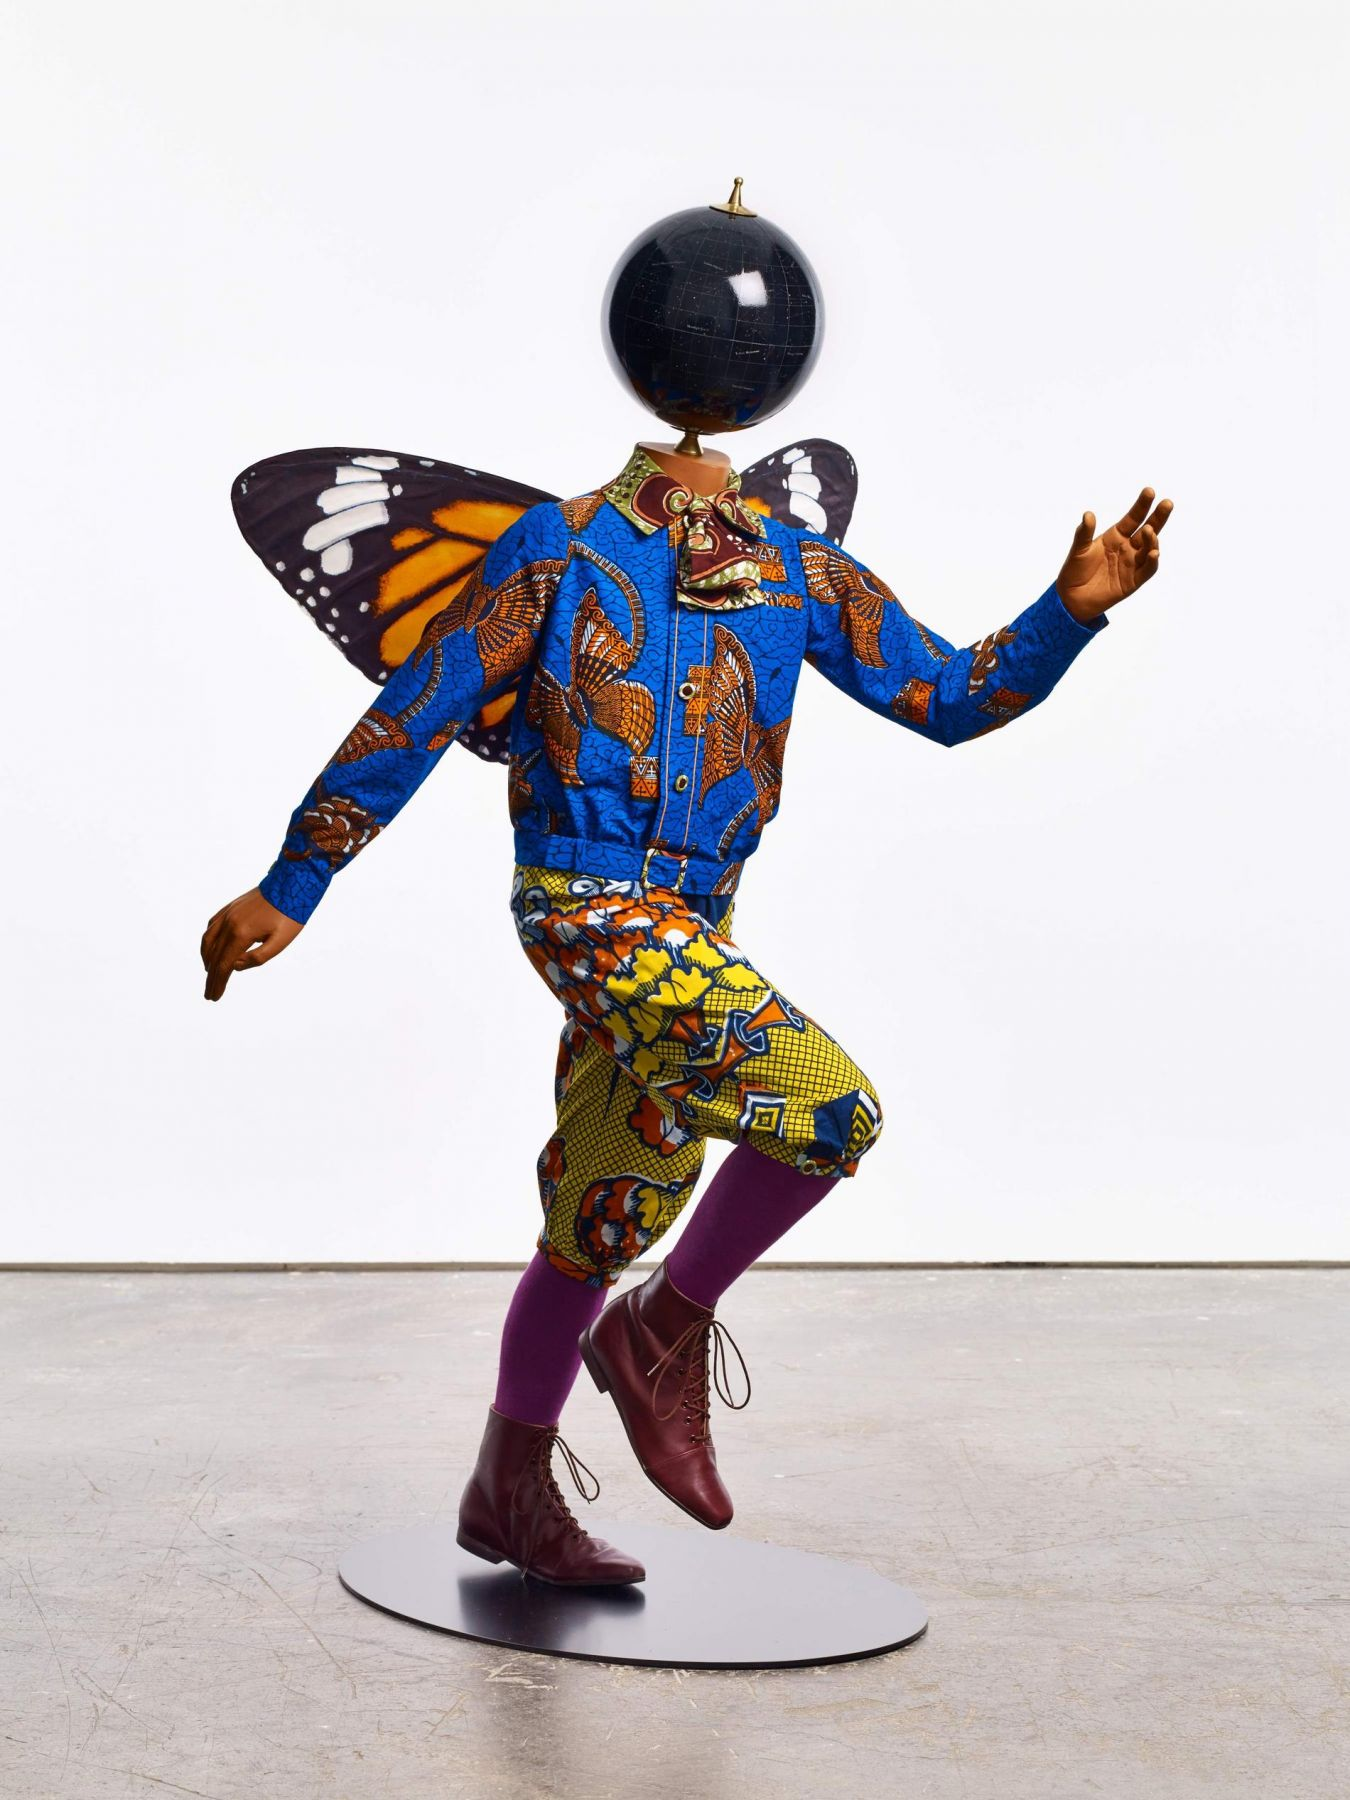 , YINKA SHONIBARE, MBE Butterfly Kid (boy), 2015 Fiberglass mannequin, Dutch wax printed cotton textile, silk, metal, globe, leather and steel baseplate 50 x 29 1/2 x 34 5/8 in. (127 x 75 x 88 cm)